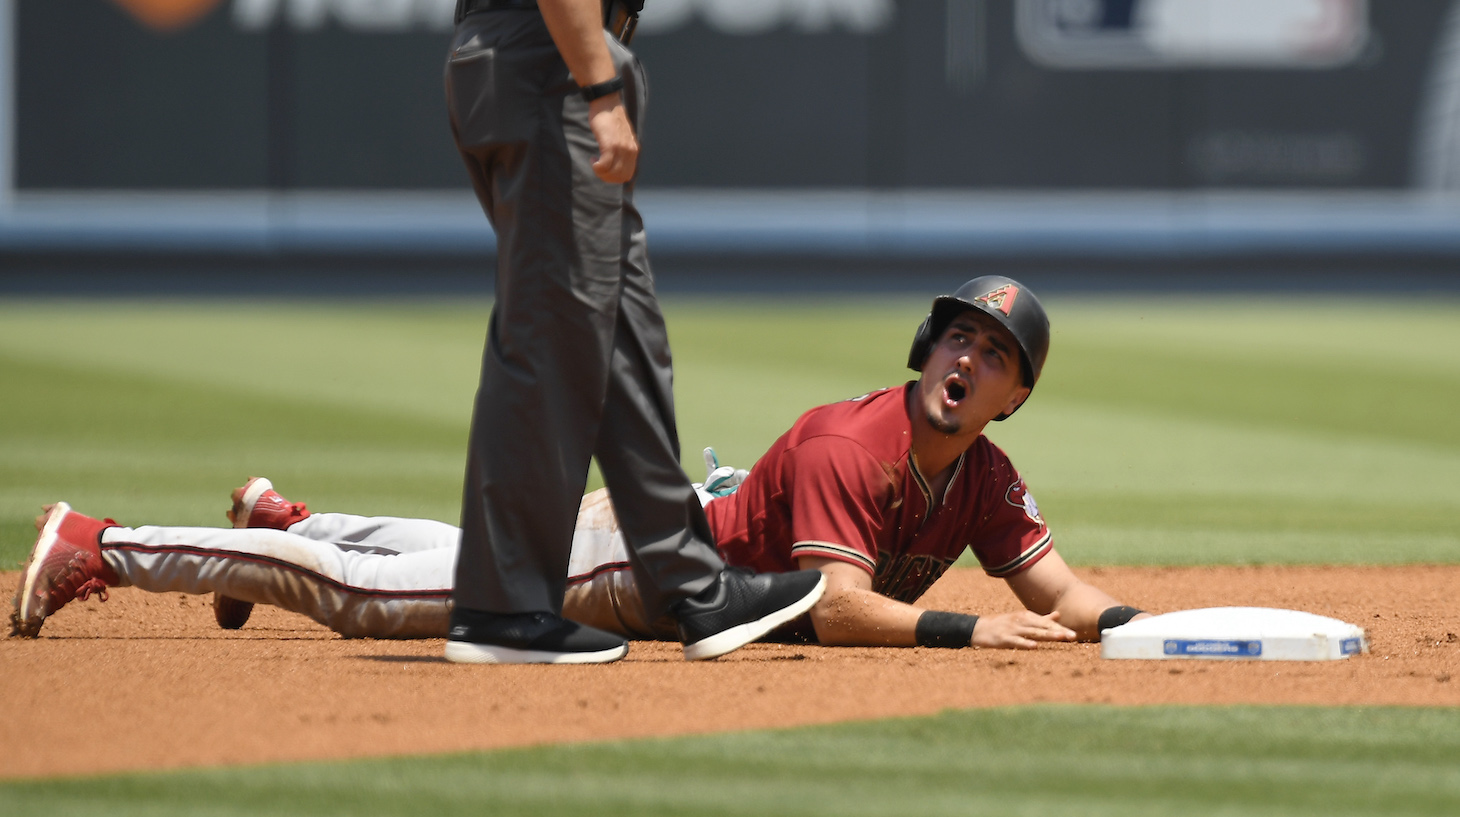 LOS ANGELES, CA - JULY 11: Josh Rojas #10 of the Arizona Diamondbacks reacts to second base umpire Brian O'Nora #7 after he was called out trying to steal second base against the Los Angeles Dodgers during the first inning at Dodger Stadium on July 11, 2021 in Los Angeles, California. (Photo by Kevork Djansezian/Getty Images)